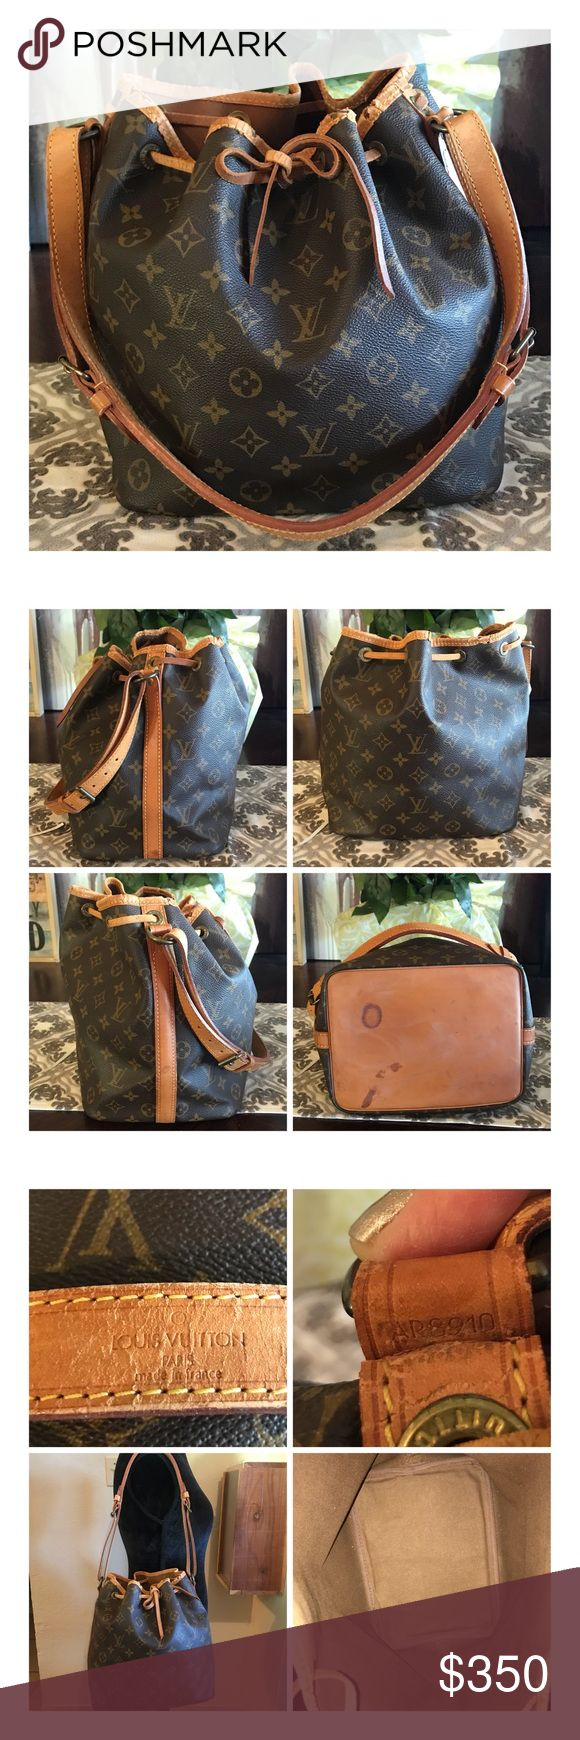 """Authentic Louis Vuitton Petite Noe 100% Authentic Louis Vuitton Petite Noe.   Monogram canvas has no scratches or tears.  Bottom shows signs of use but in good condition.  Leather has cracks but stitching is good.  Strap in good condition.  Leather rim has cracking see pics.  Inside is clean.  Will sell fast.  W9.44xH10.6xD7.08"""".  I do not trade. Louis Vuitton Bags Shoulder Bags"""